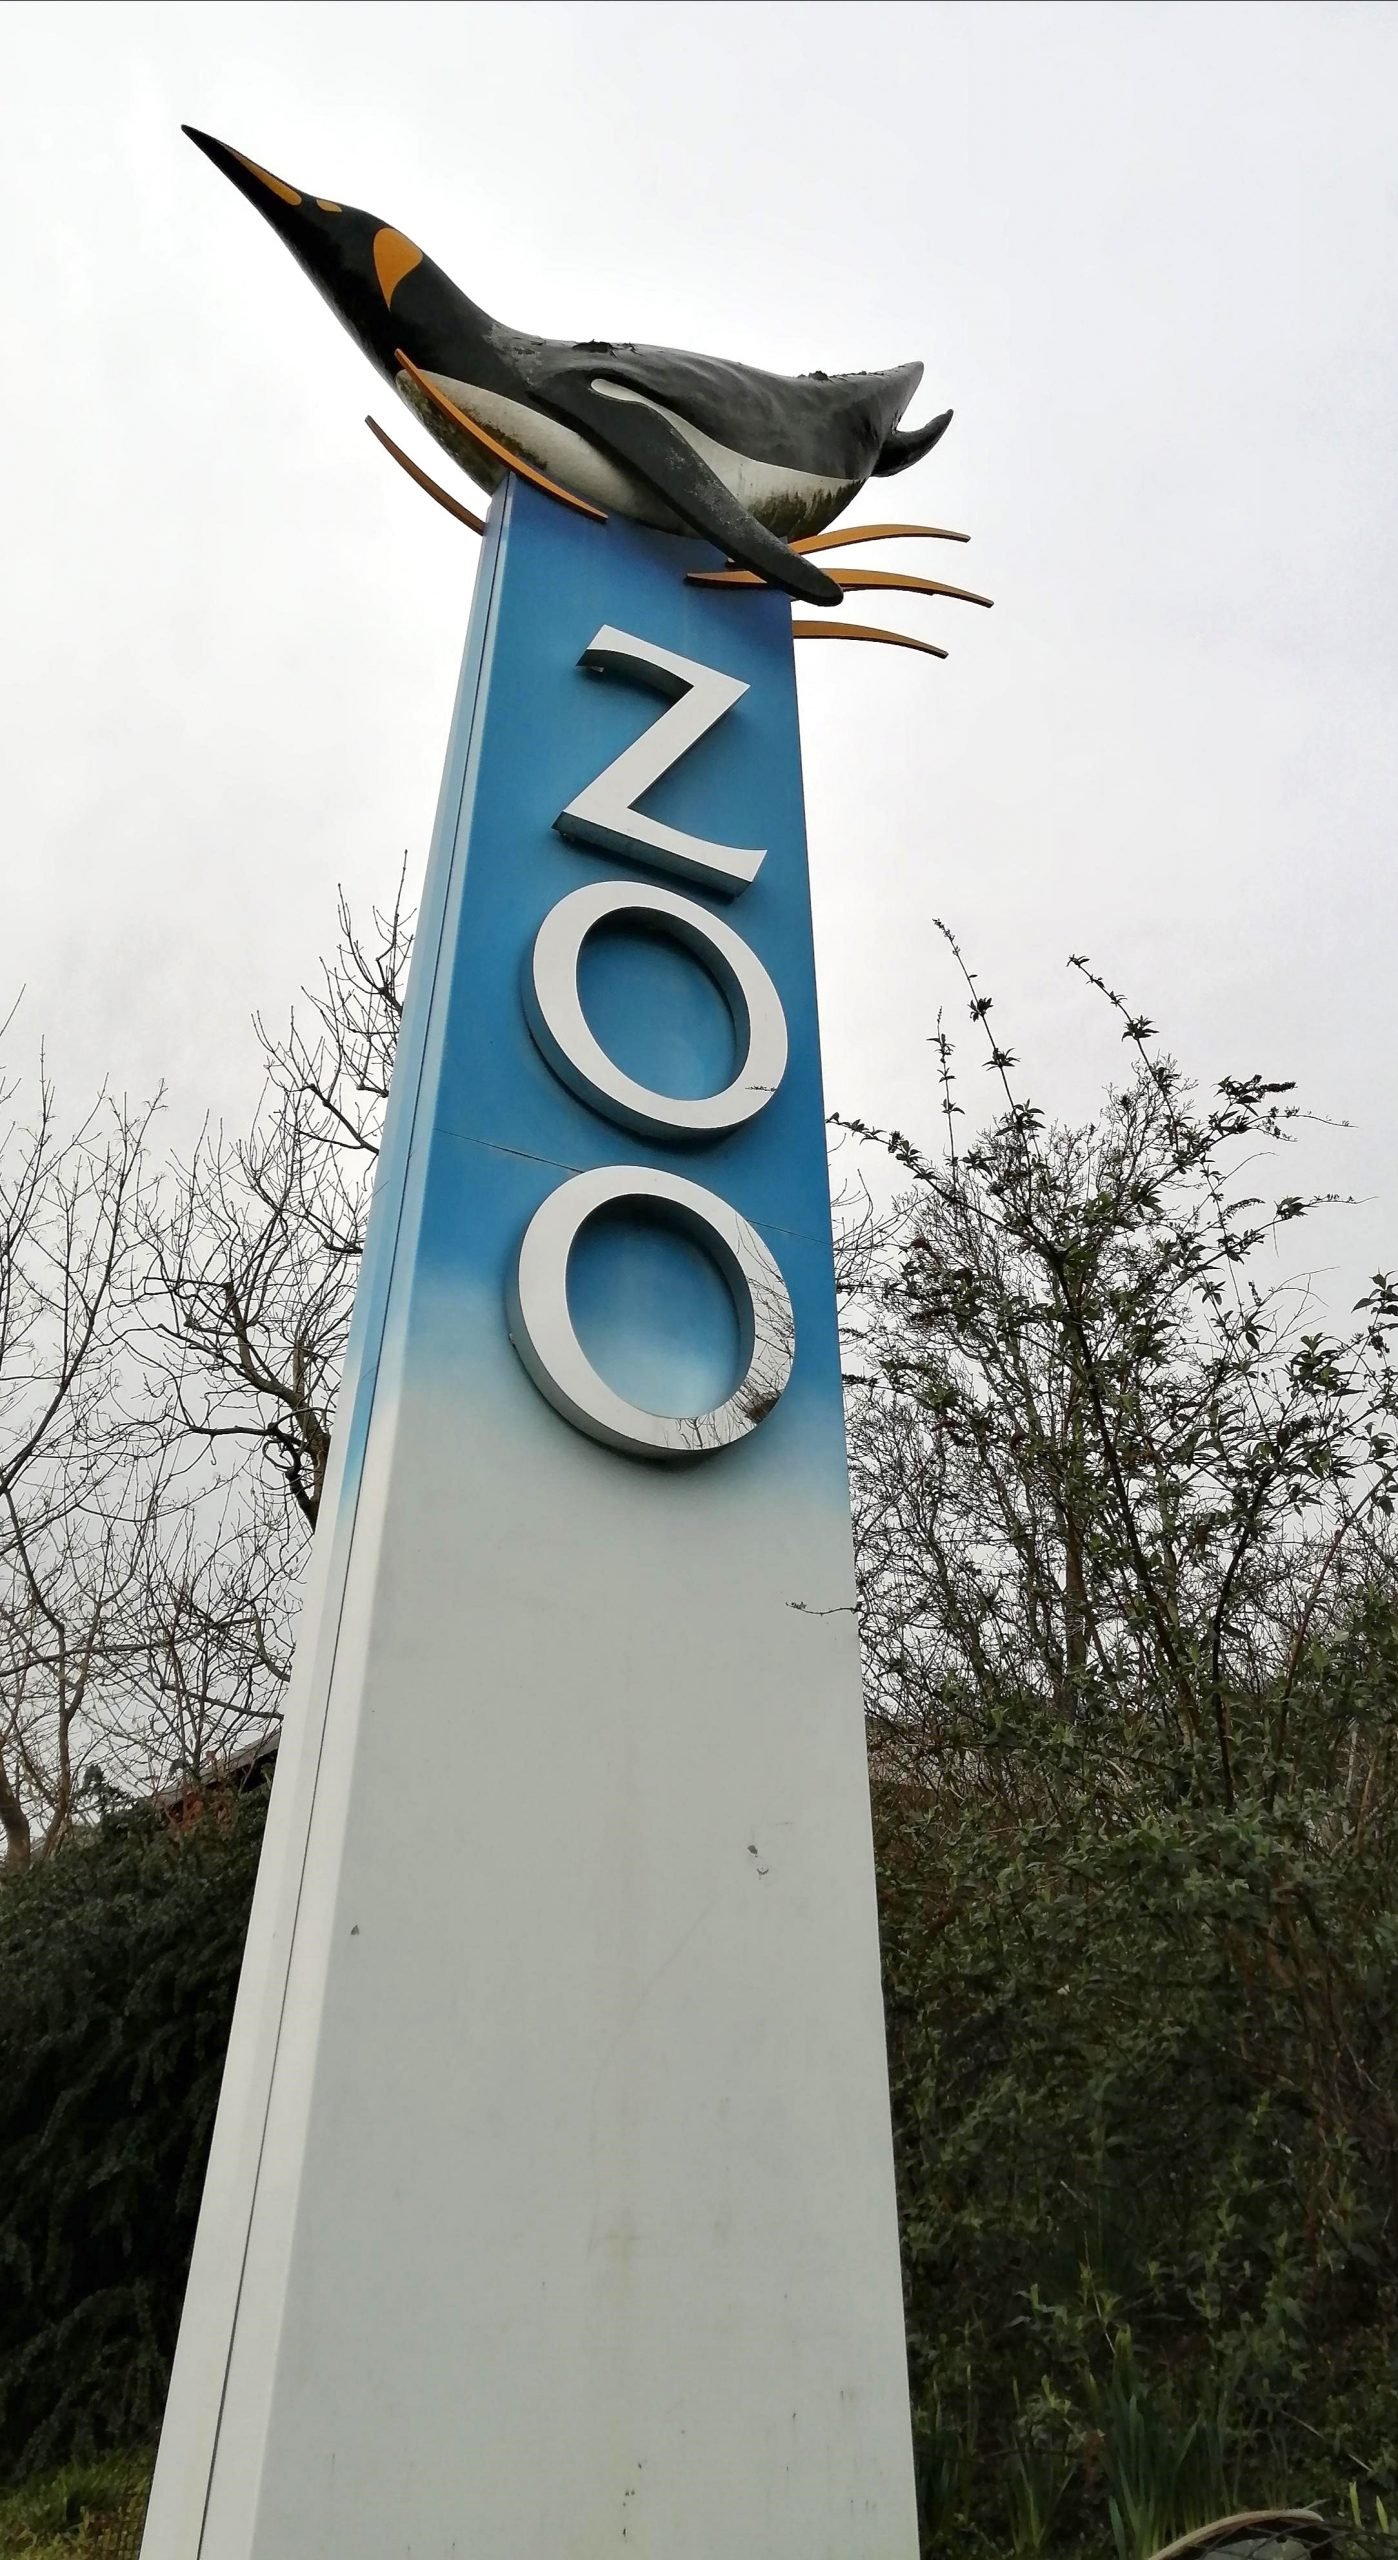 Edinburgh Zoo Sign with Penguin